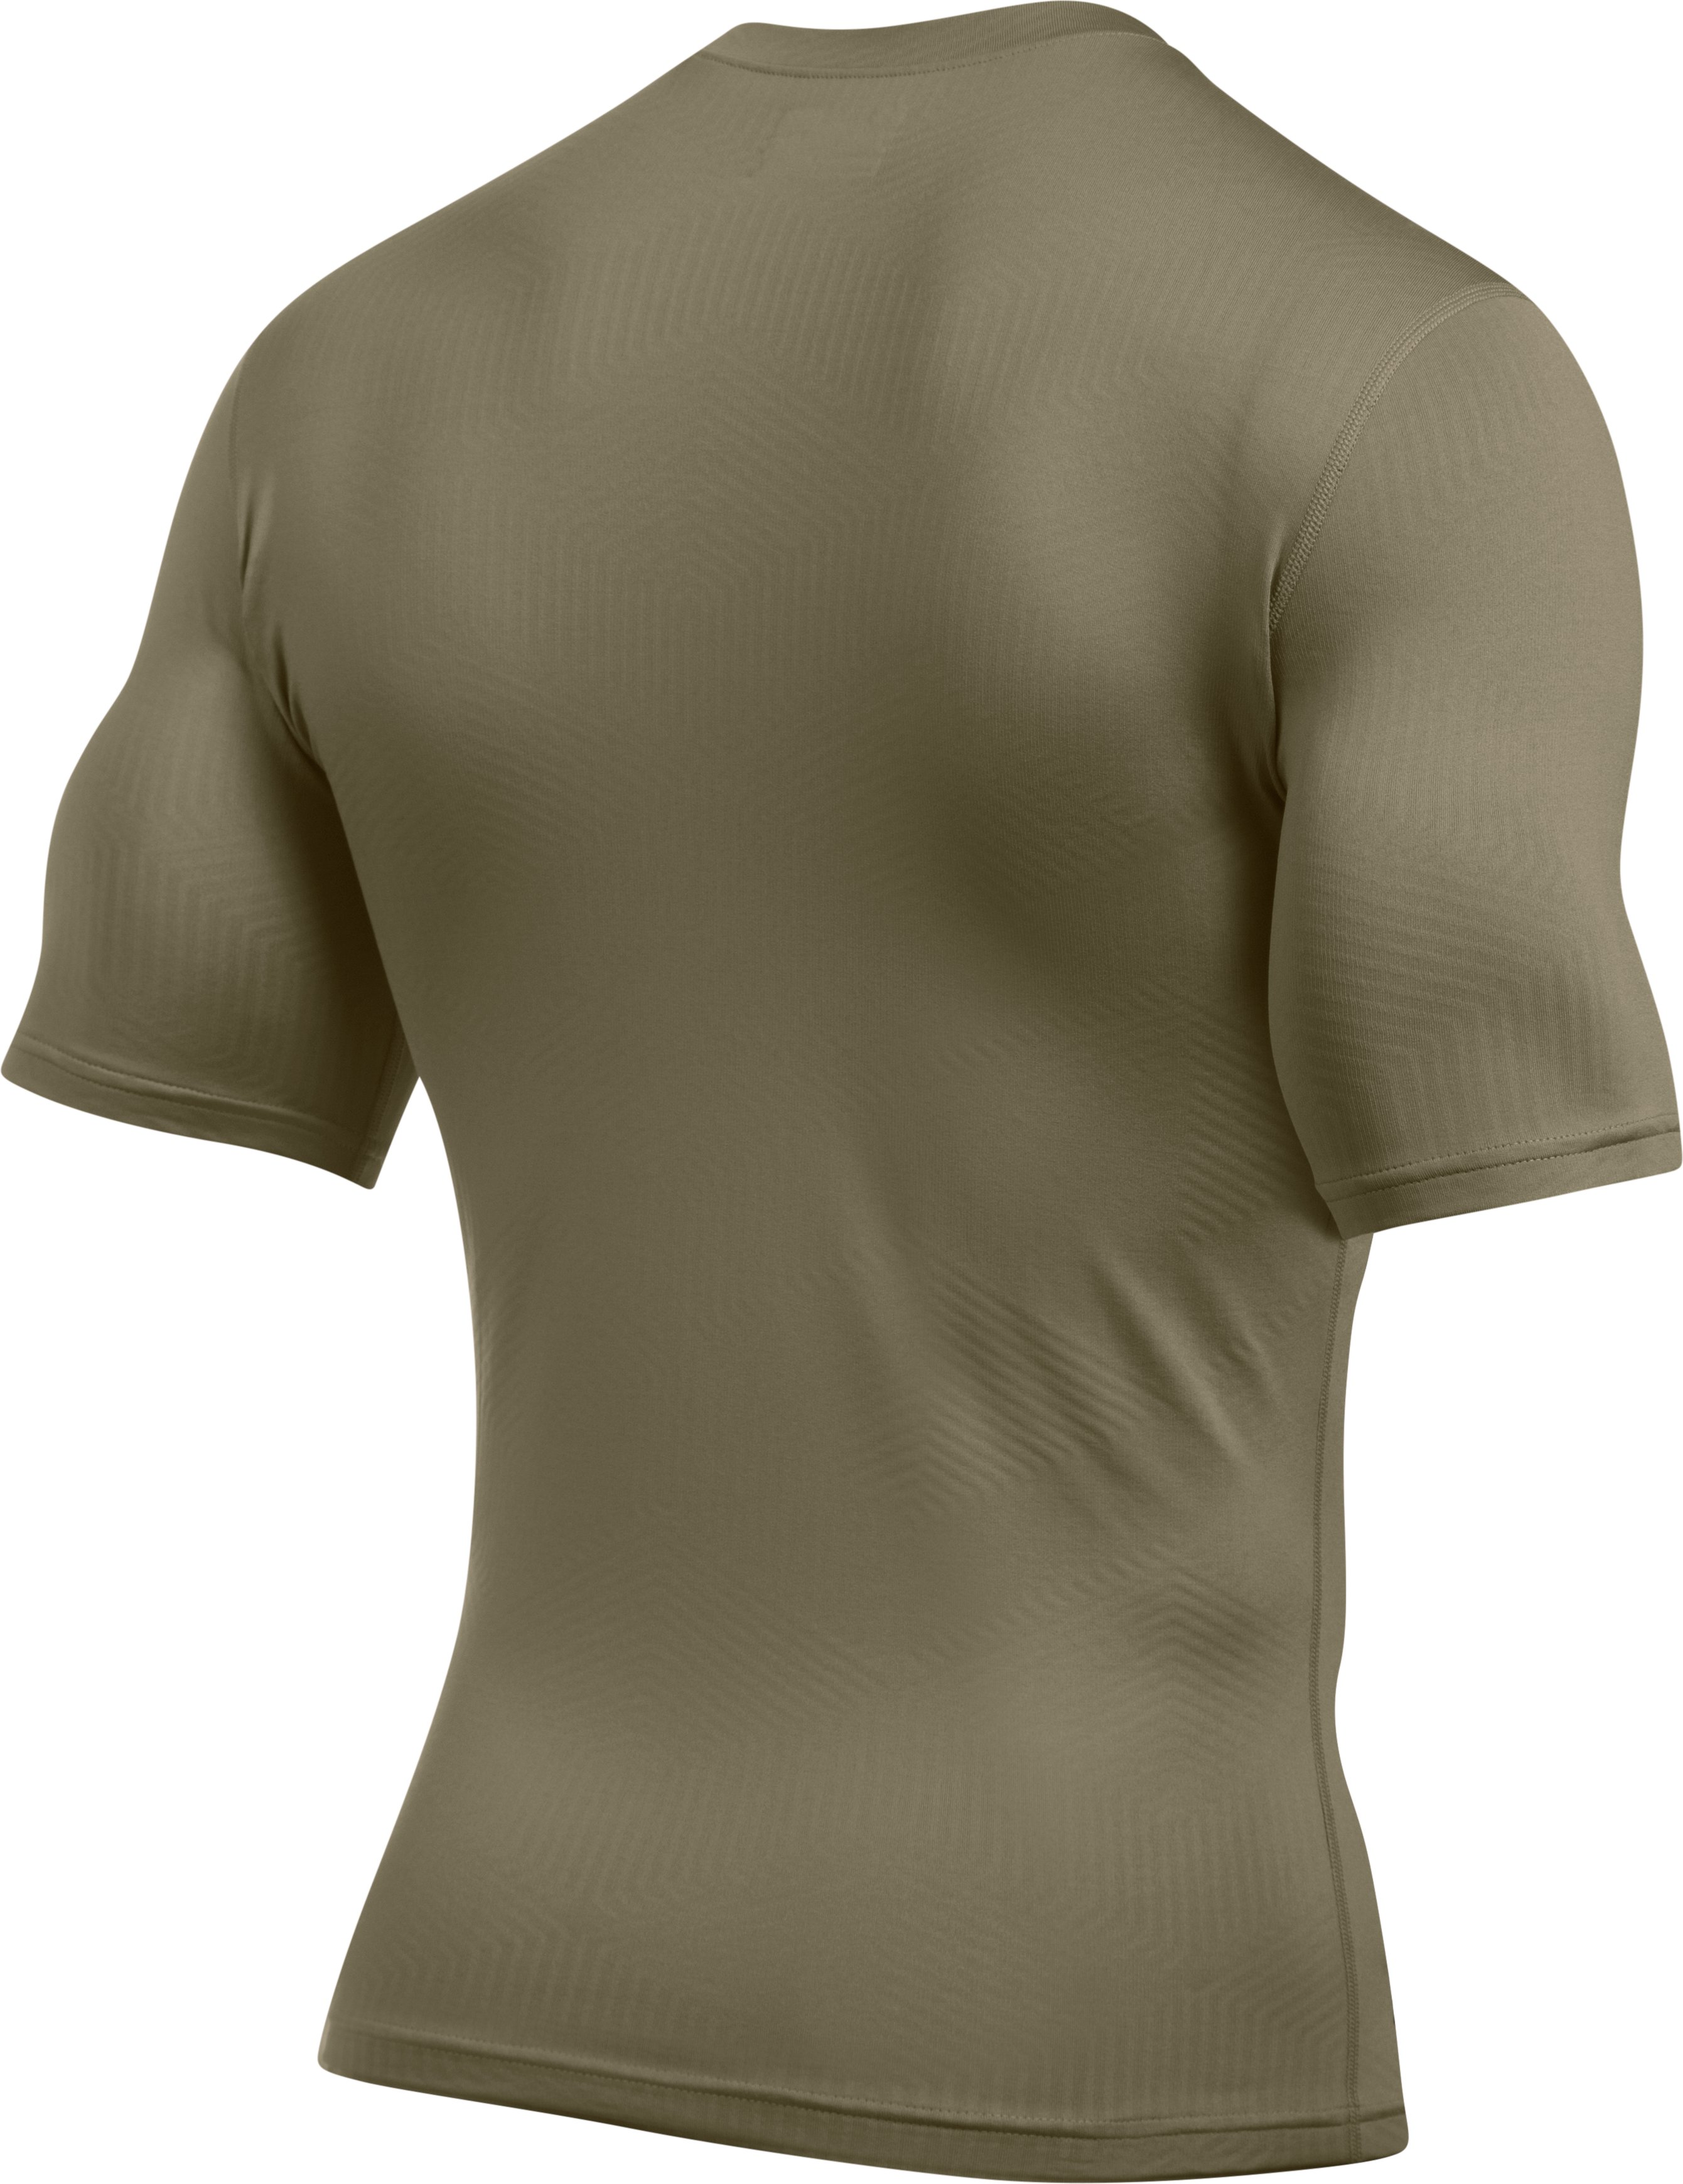 Men's ColdGear® Infrared Tactical Short Sleeve, FEDERAL TAN,